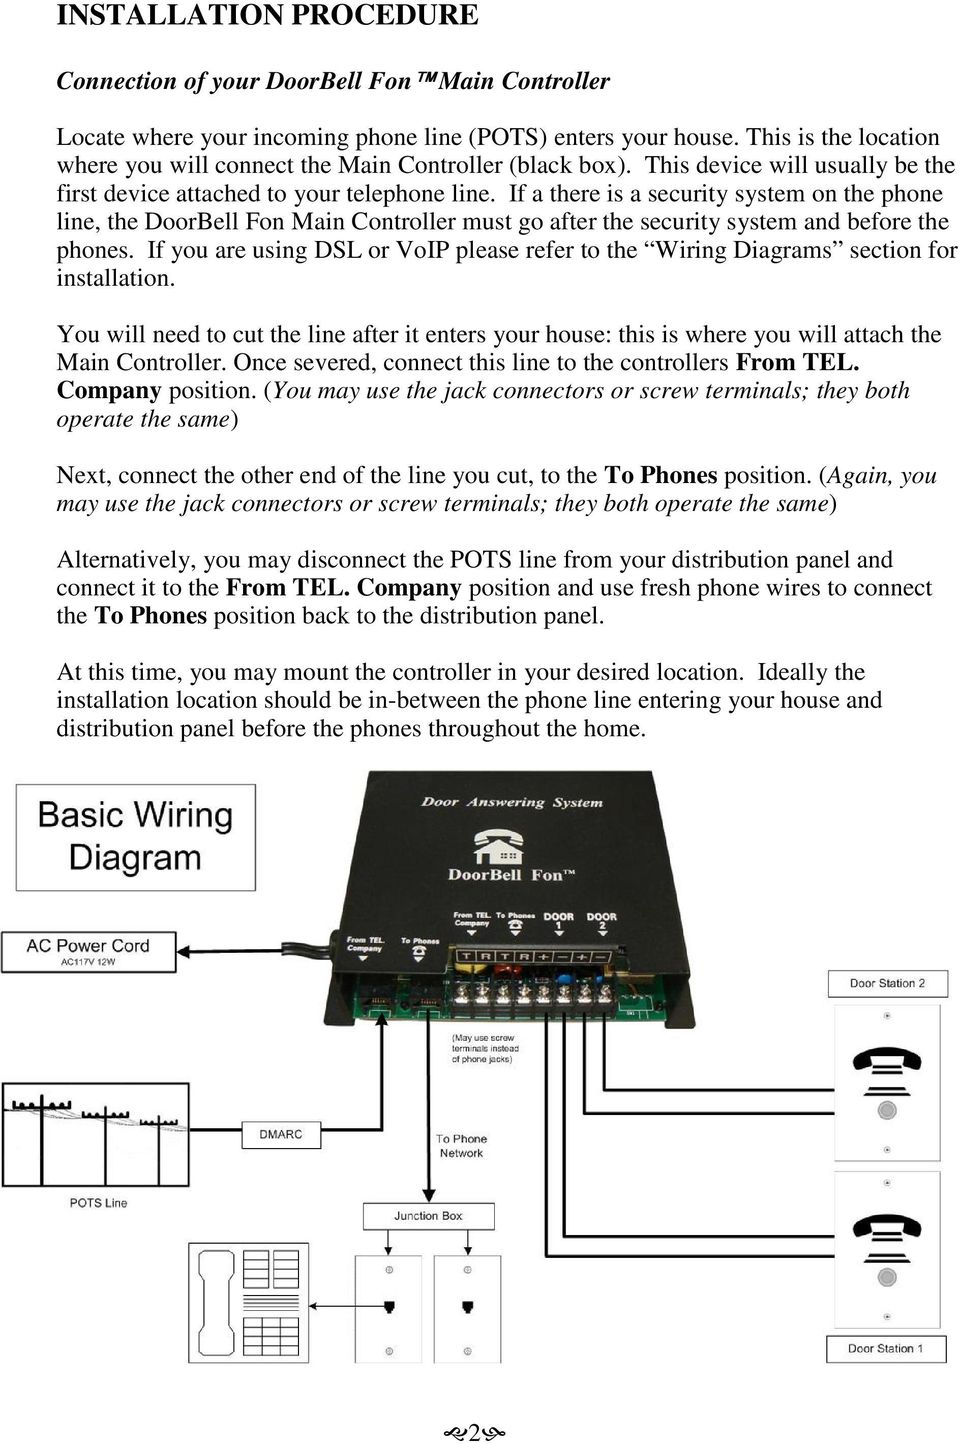 Doorbell Fon User And Installation Manual Pdf Phone Line Wire Diagram If A There Is Security System On The Main